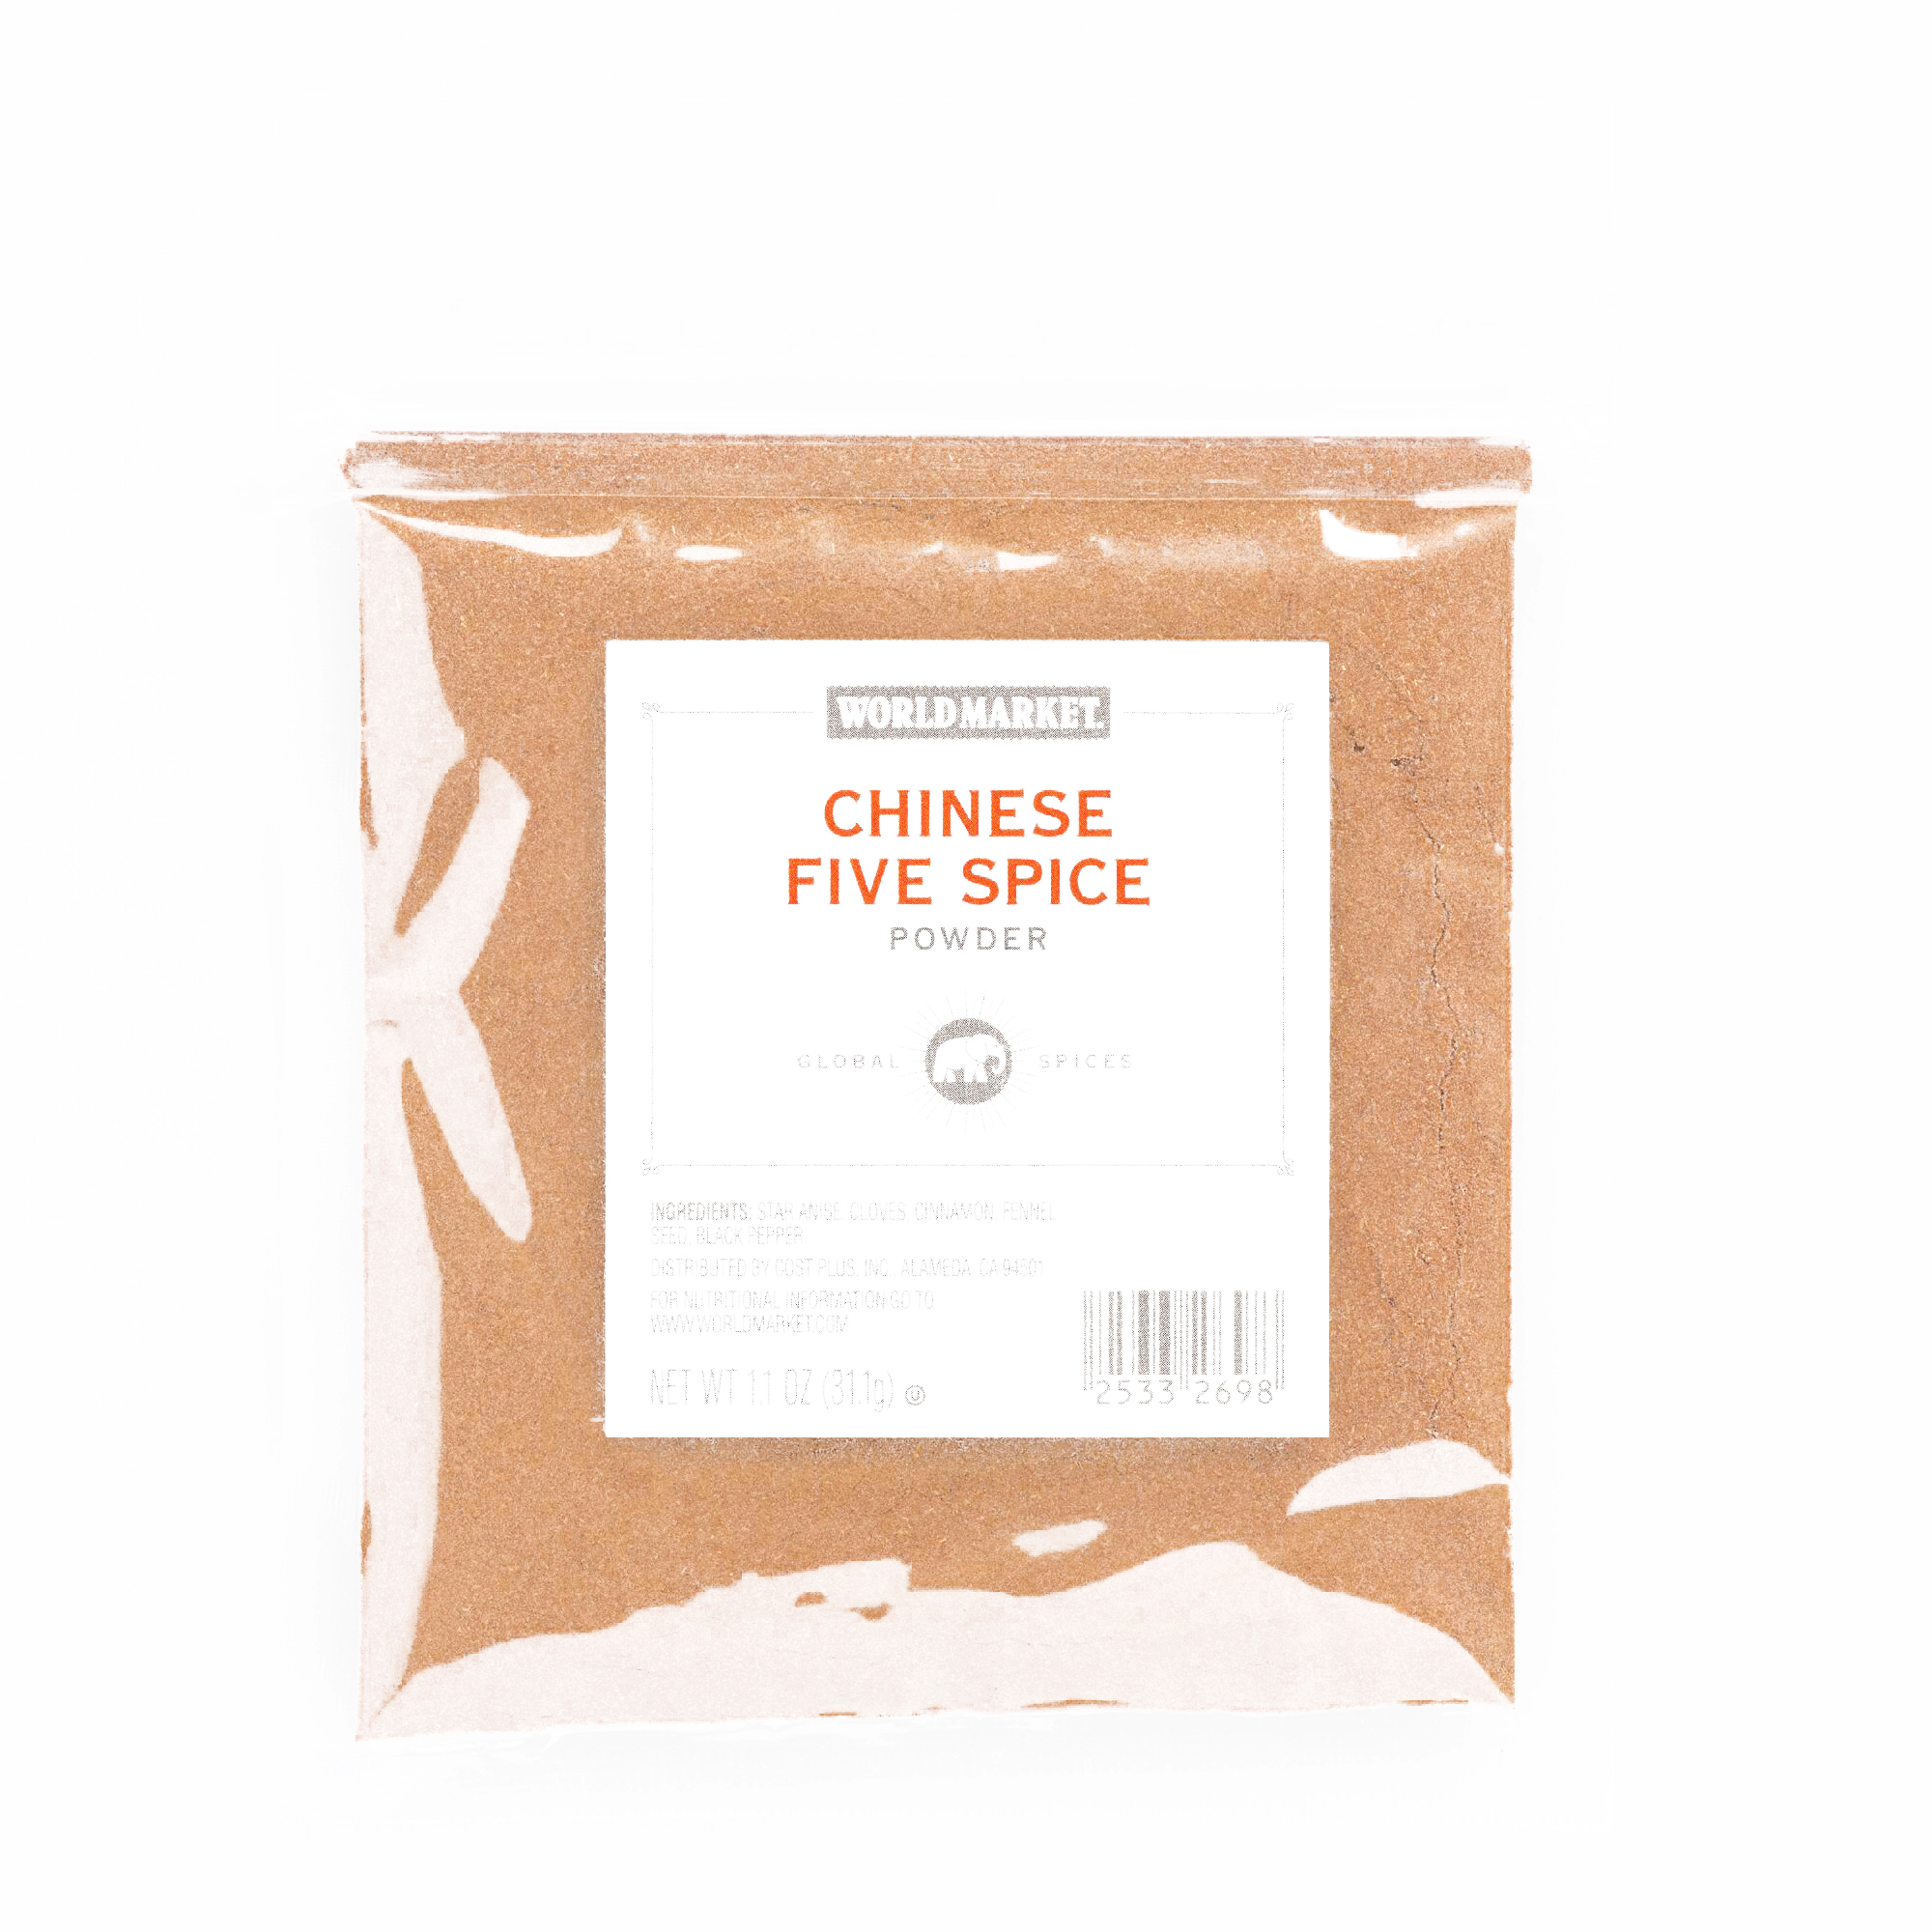 Chinese Five Spice Seasoning Spice Bag 1.1 oz each (4 Items Per Order, not per case)